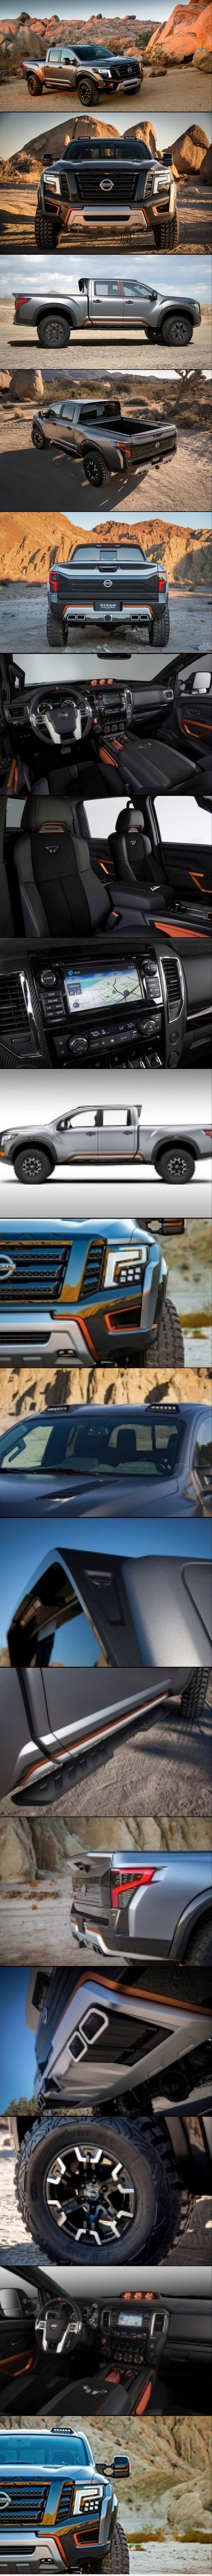 "ALL NEW "" 2017 Nissan Titan Warrior Concept "", 2017 Concept Car Photos and Images, 2017 Cars"